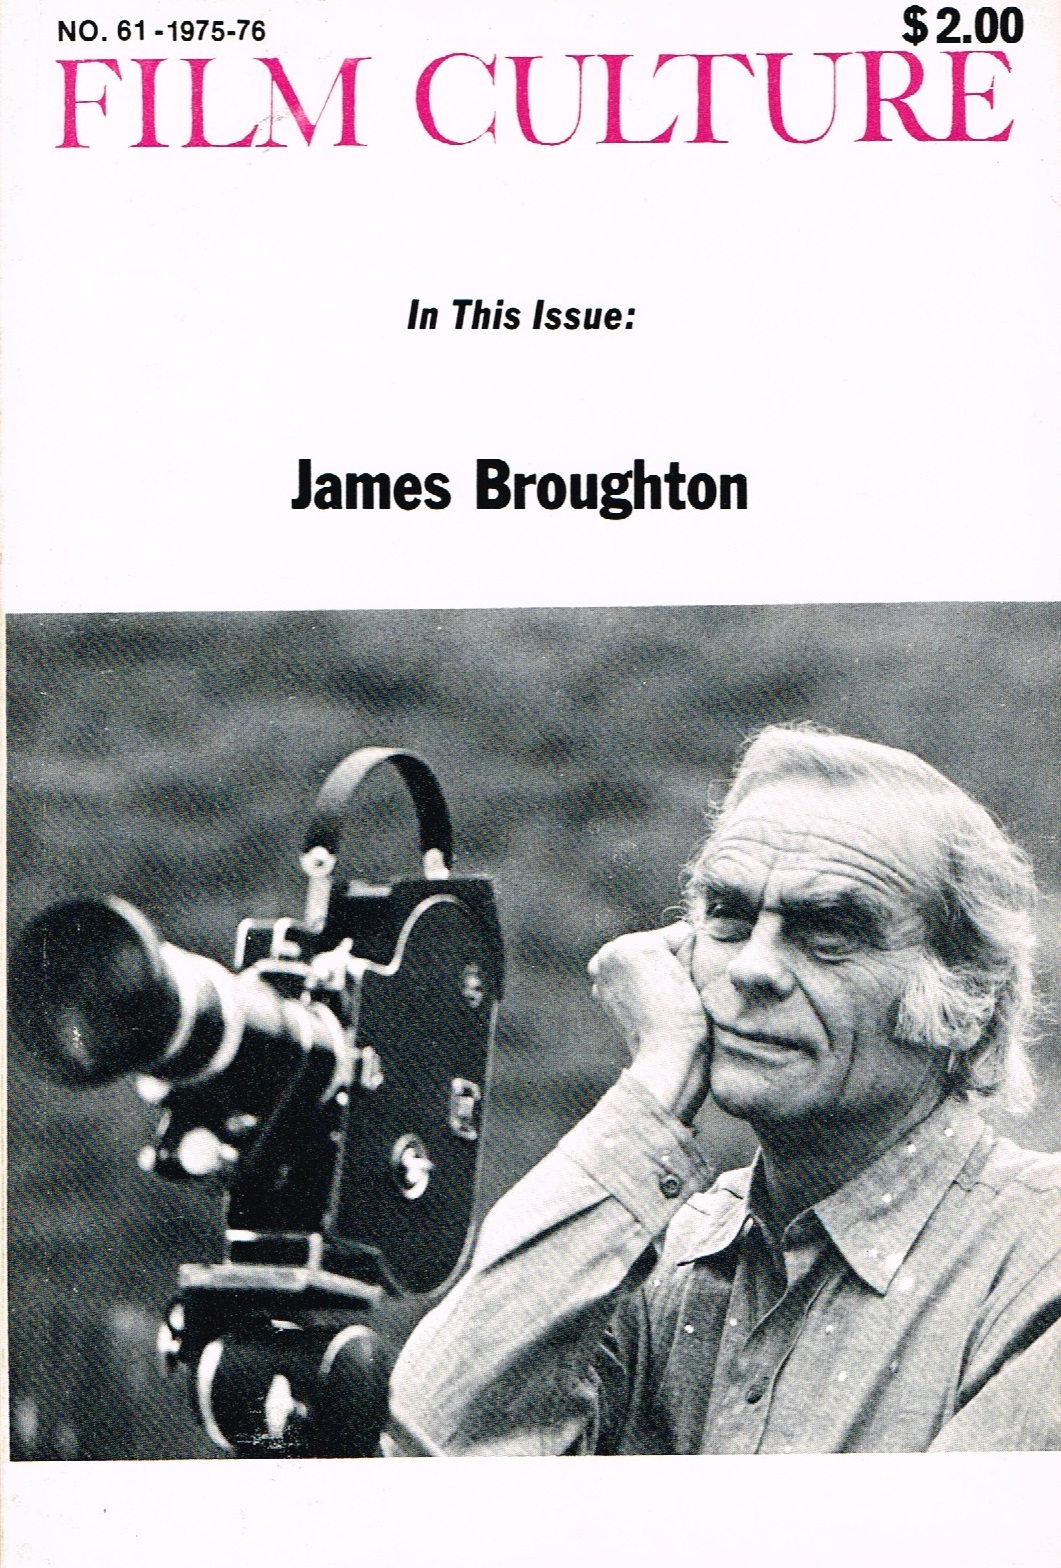 (FILM CULTURE) (BROUGHTON, JAMES). MEKAS, JONAS & P. ADAMS SITNEY, EDITORS - FILM CULTURE NUMBER 61 - 1975-1976